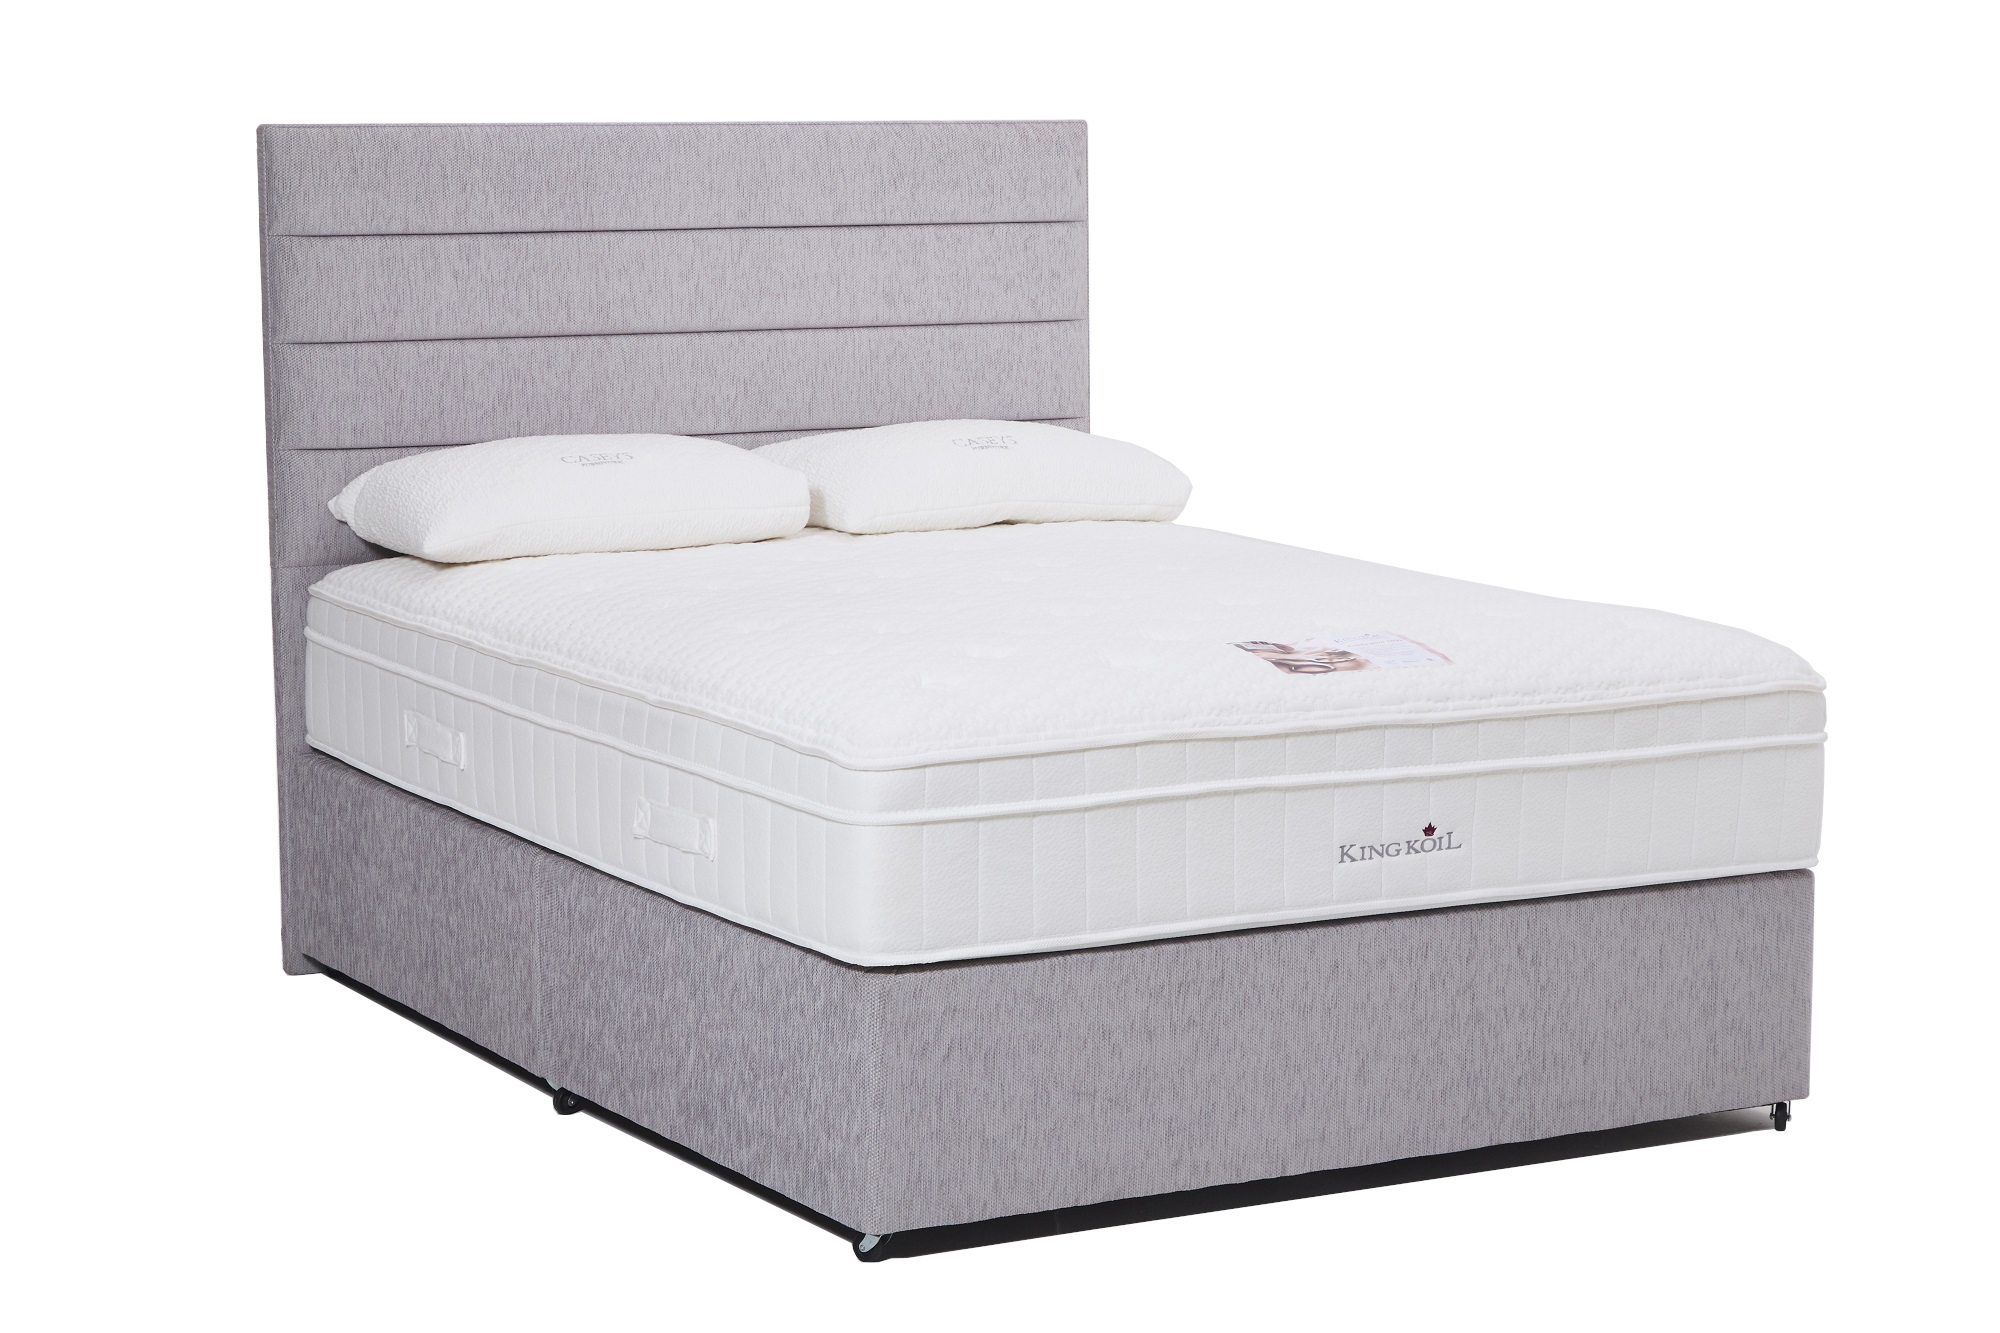 King Koil Celebration 1800 Mattress and Divan